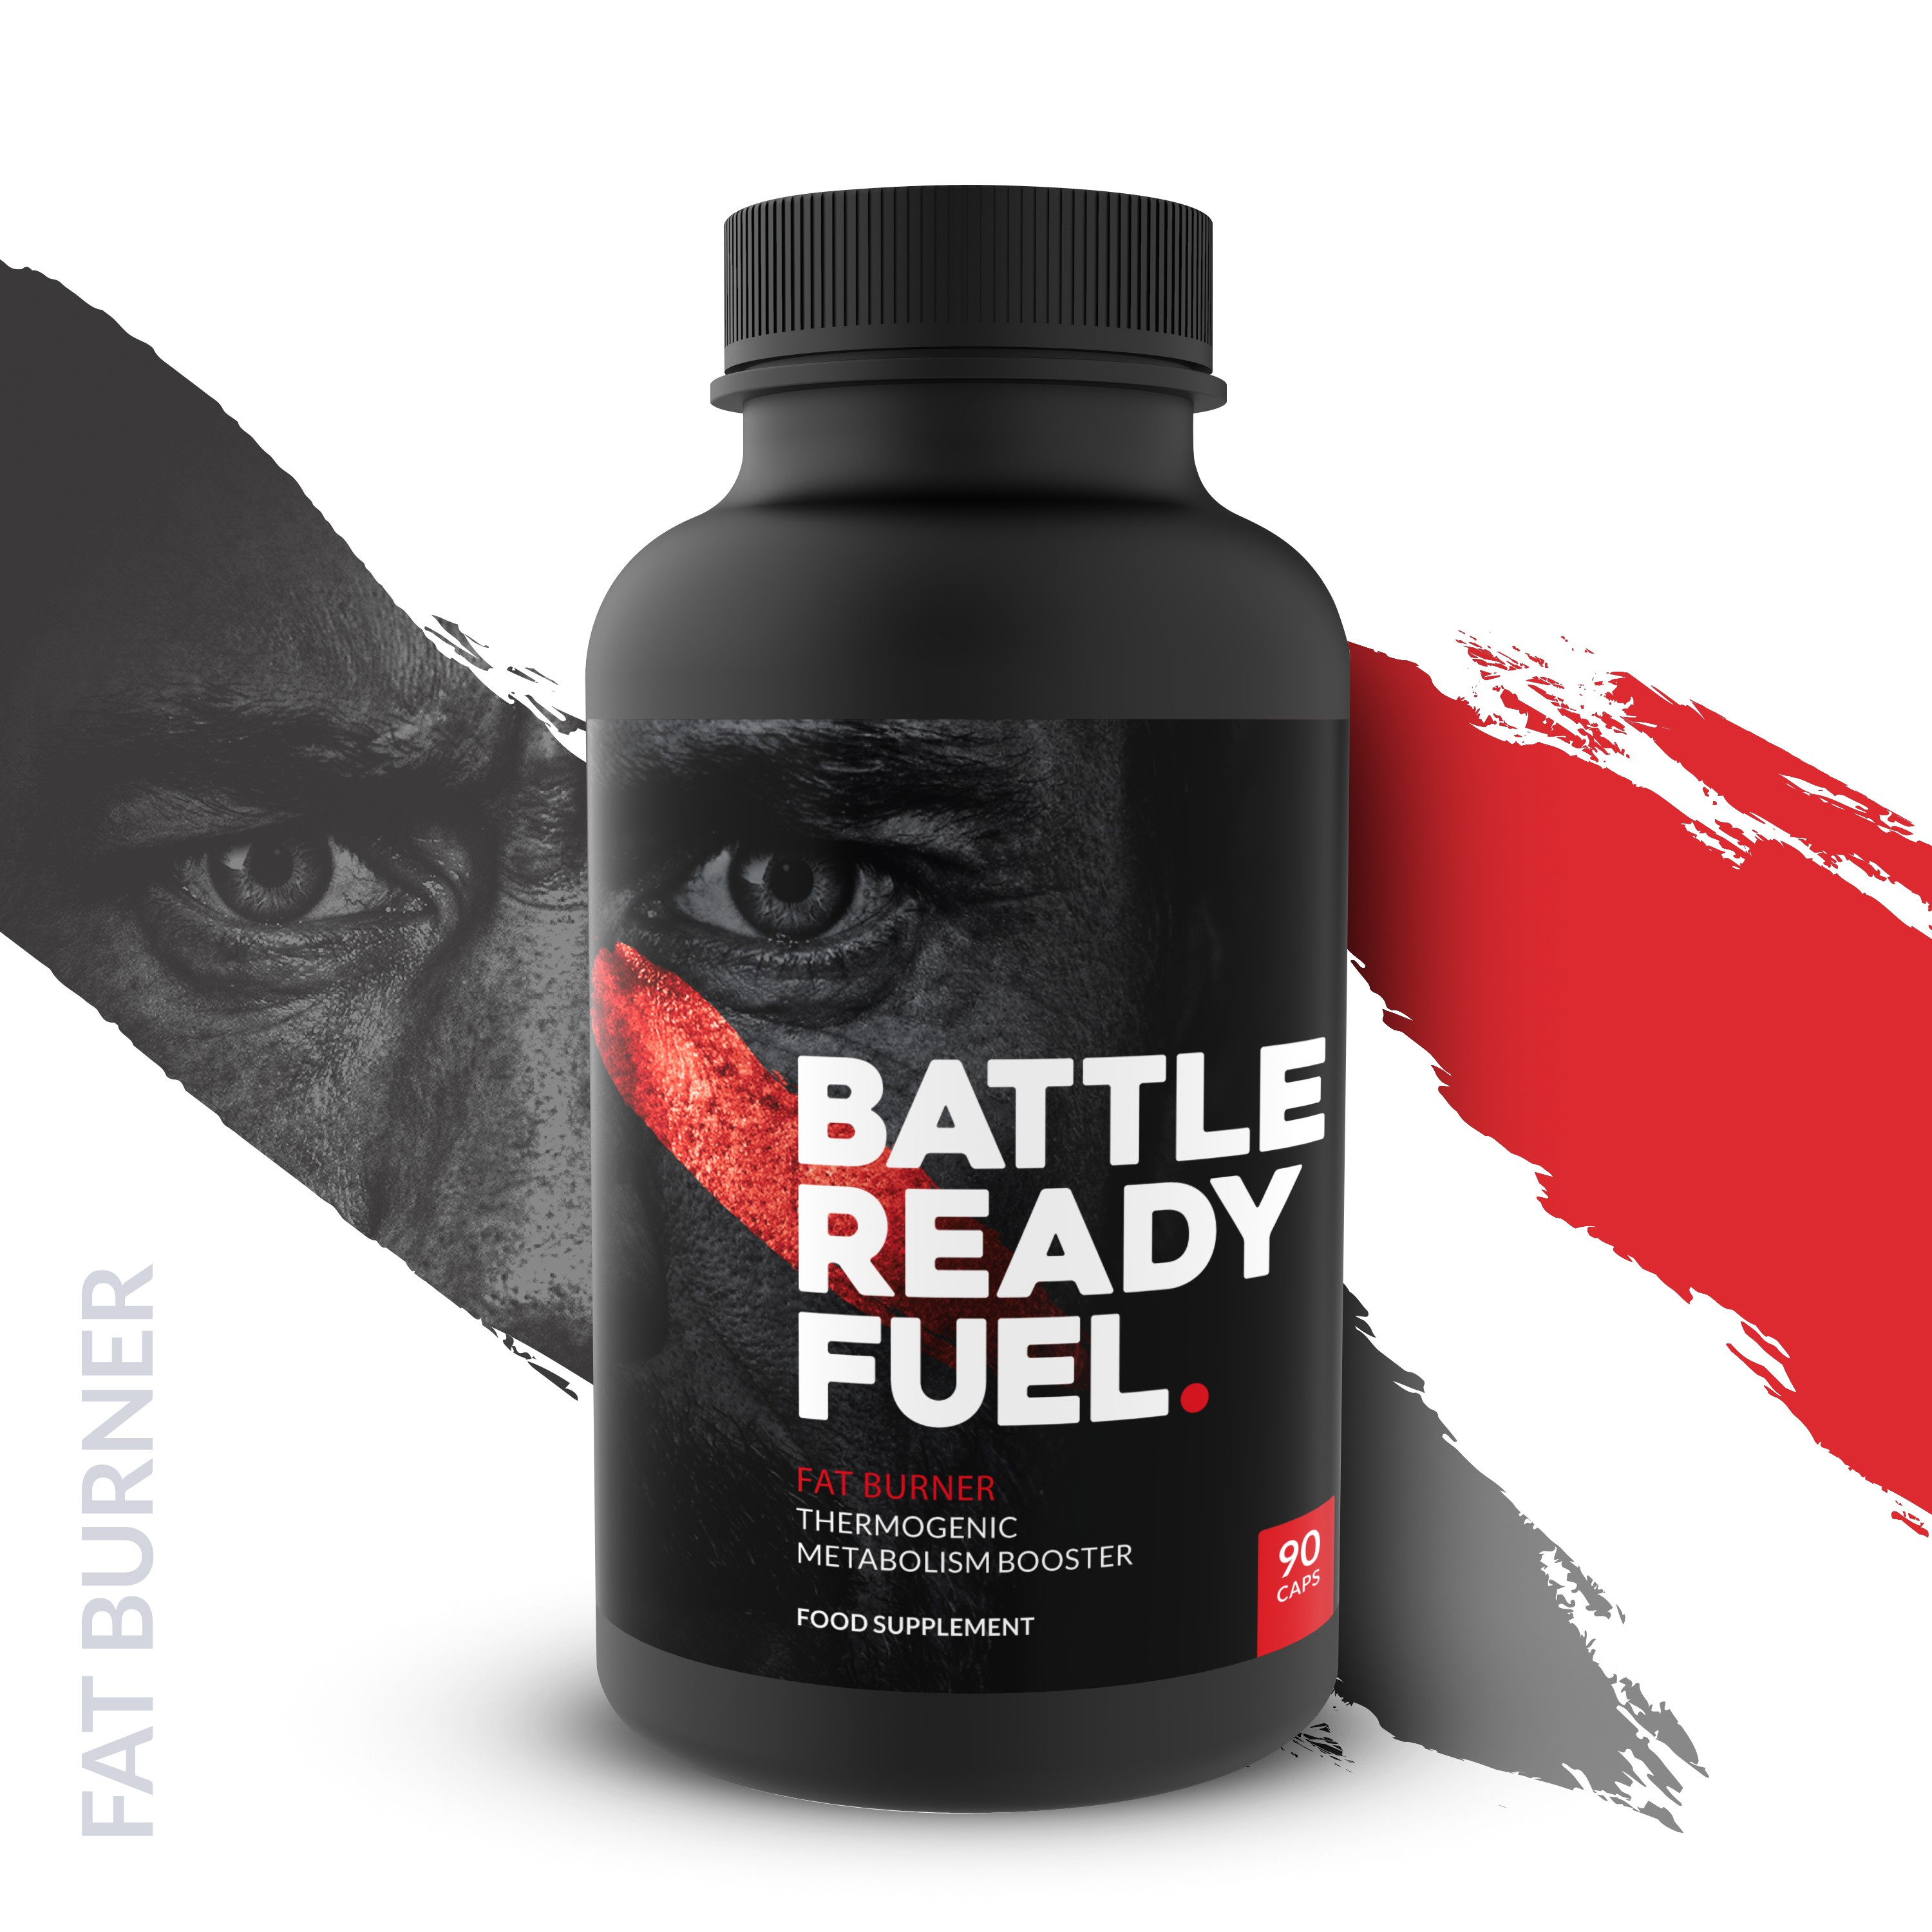 Product Images for Supplement Brand